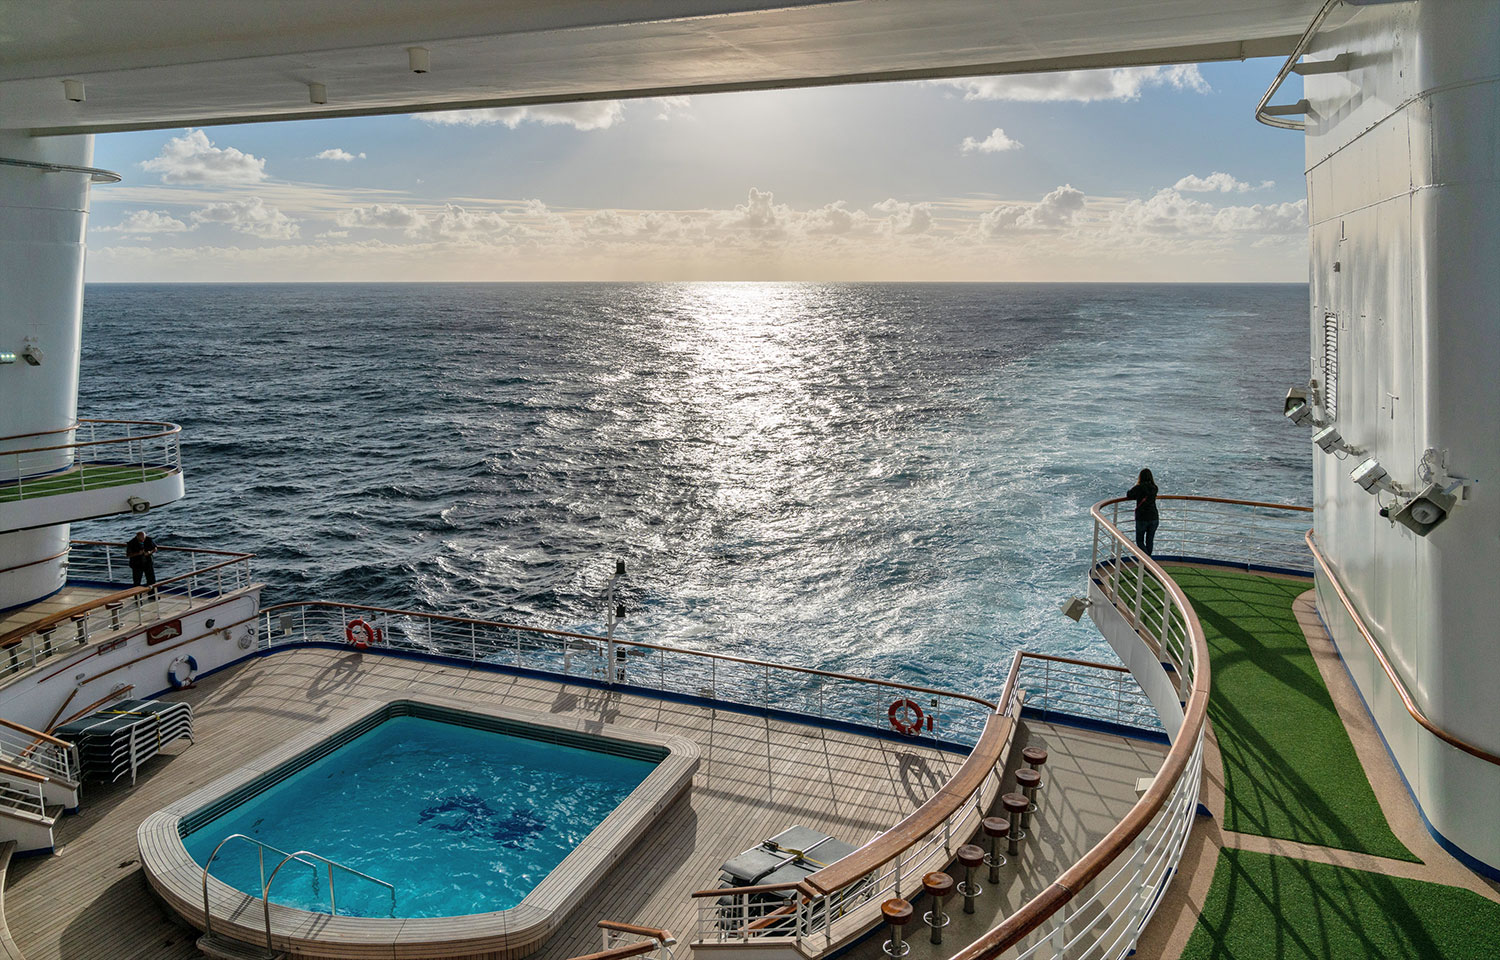 Thaneeya McArdle on the Golden Princess cruise from Melbourne to New Zealand. Crossing the Tasman Sea.